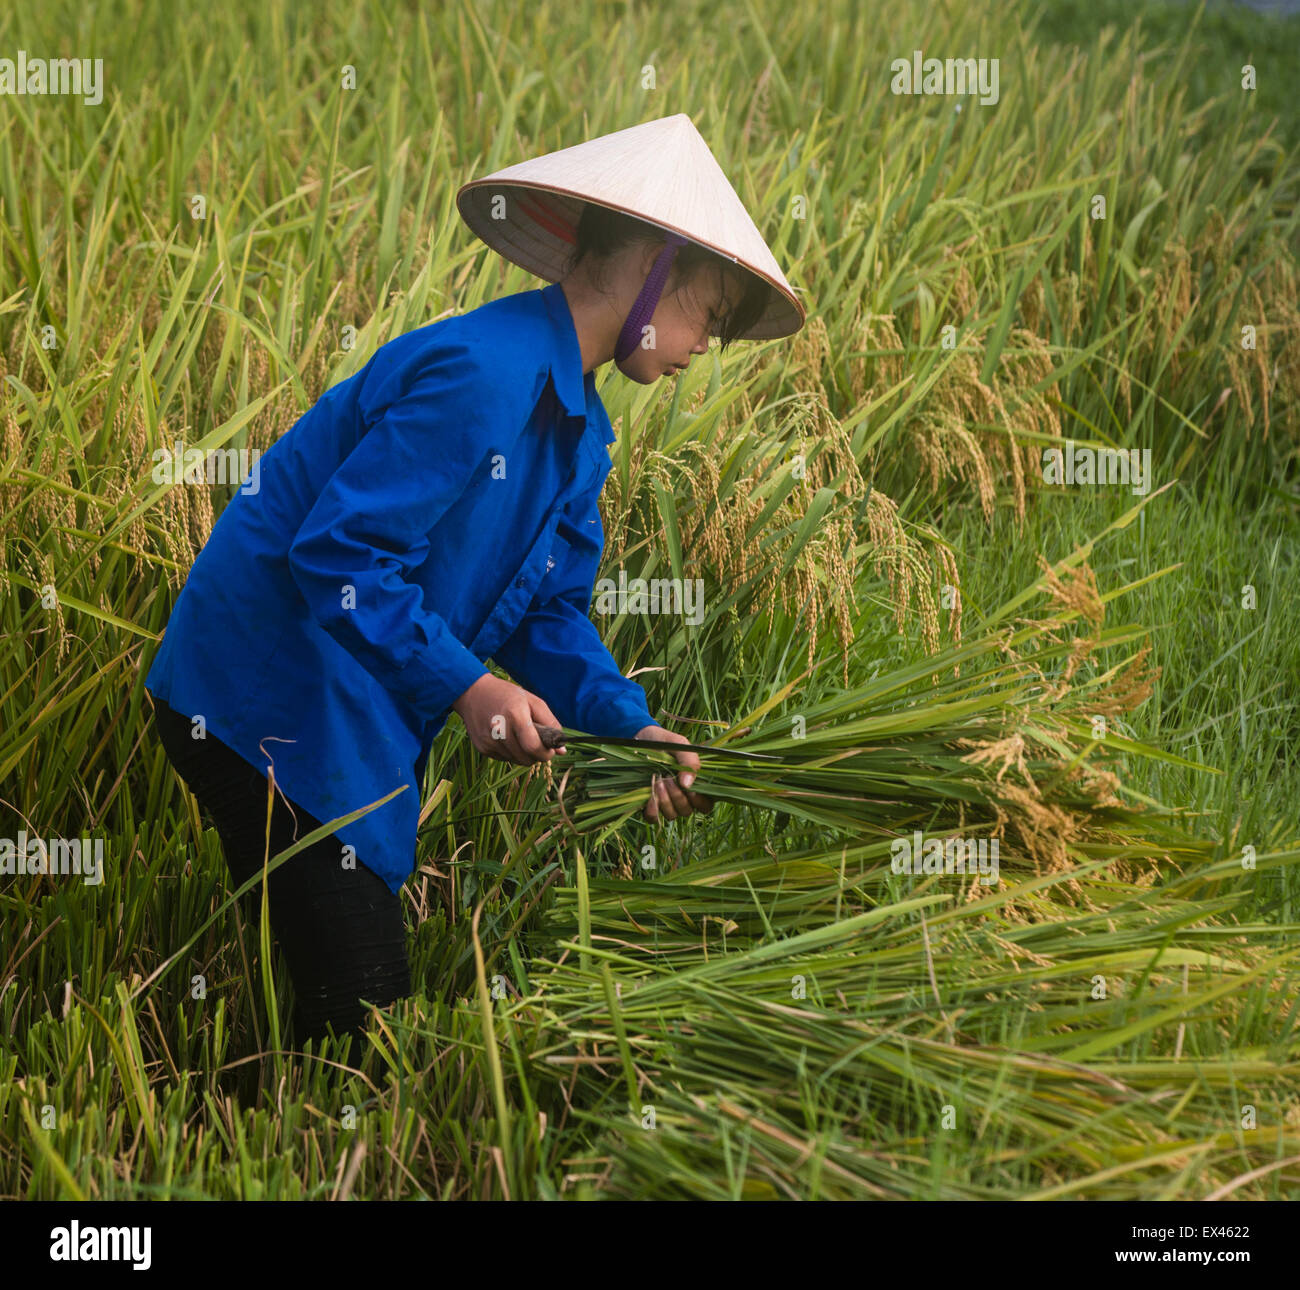 Young woman wearing traditional conical hat harvests rice plants in a paddy near Viet Hung, Que Vo, Vietnam - Stock Image